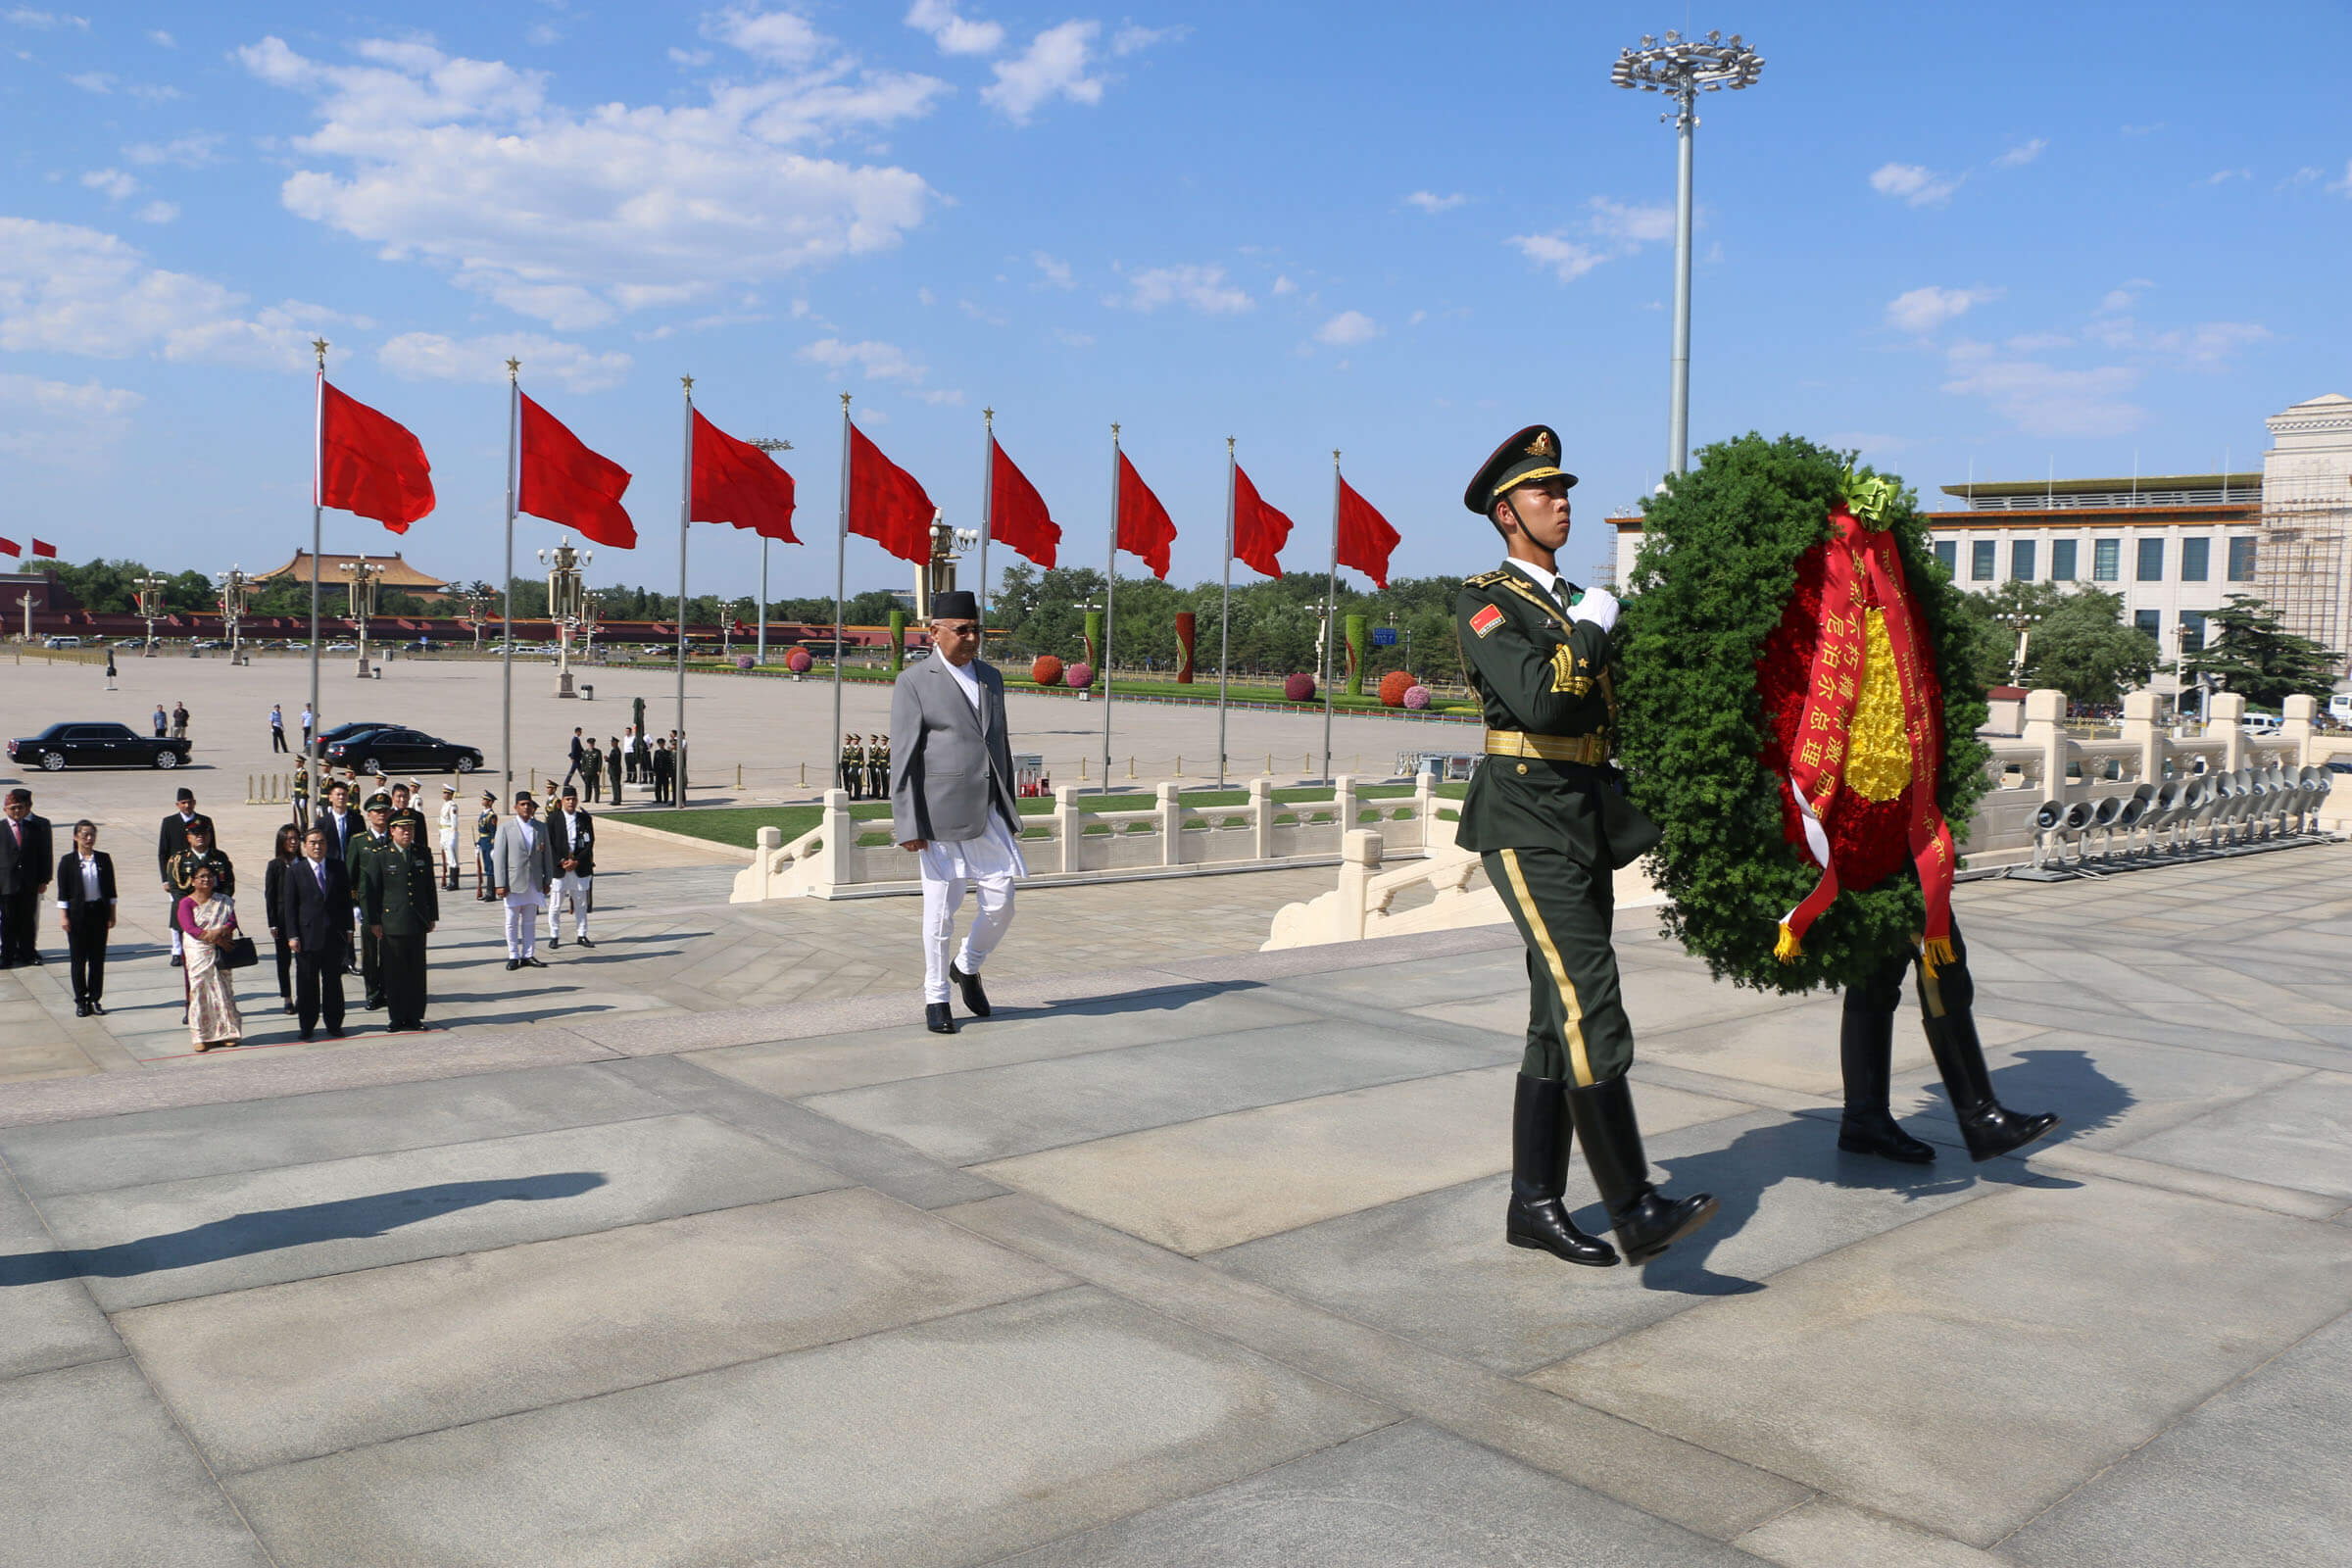 Prime Minister KP Oli laid a wreath at the Monument to the People's Heroes at the Tian'anmen Square in Beijing on Wednesday. Oli is scheduled to hold meeting with Chinese Premier Li Keqiang.